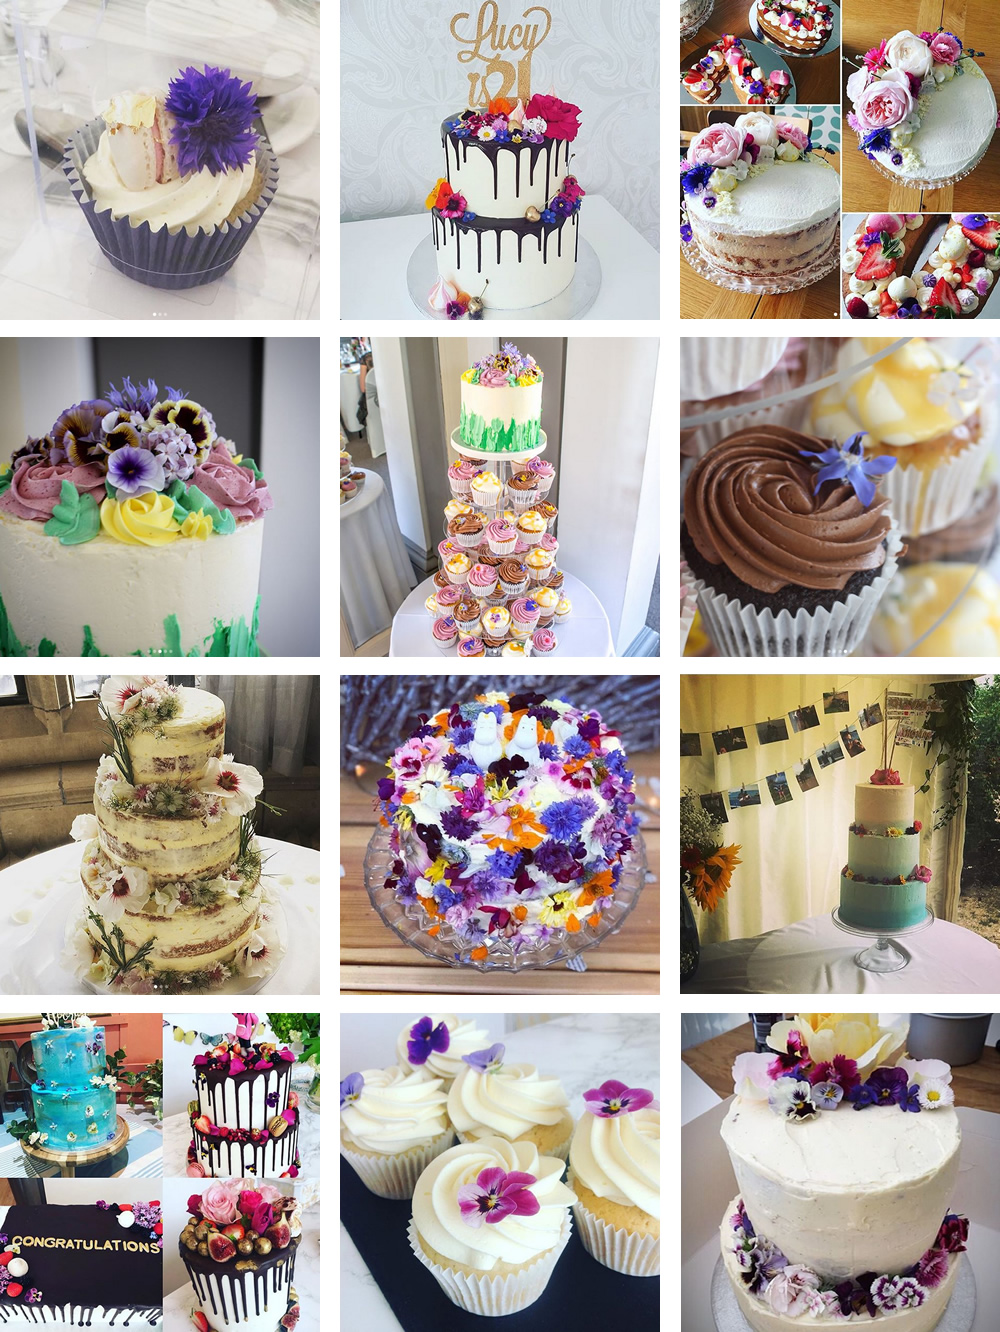 Client edible flower cake photos